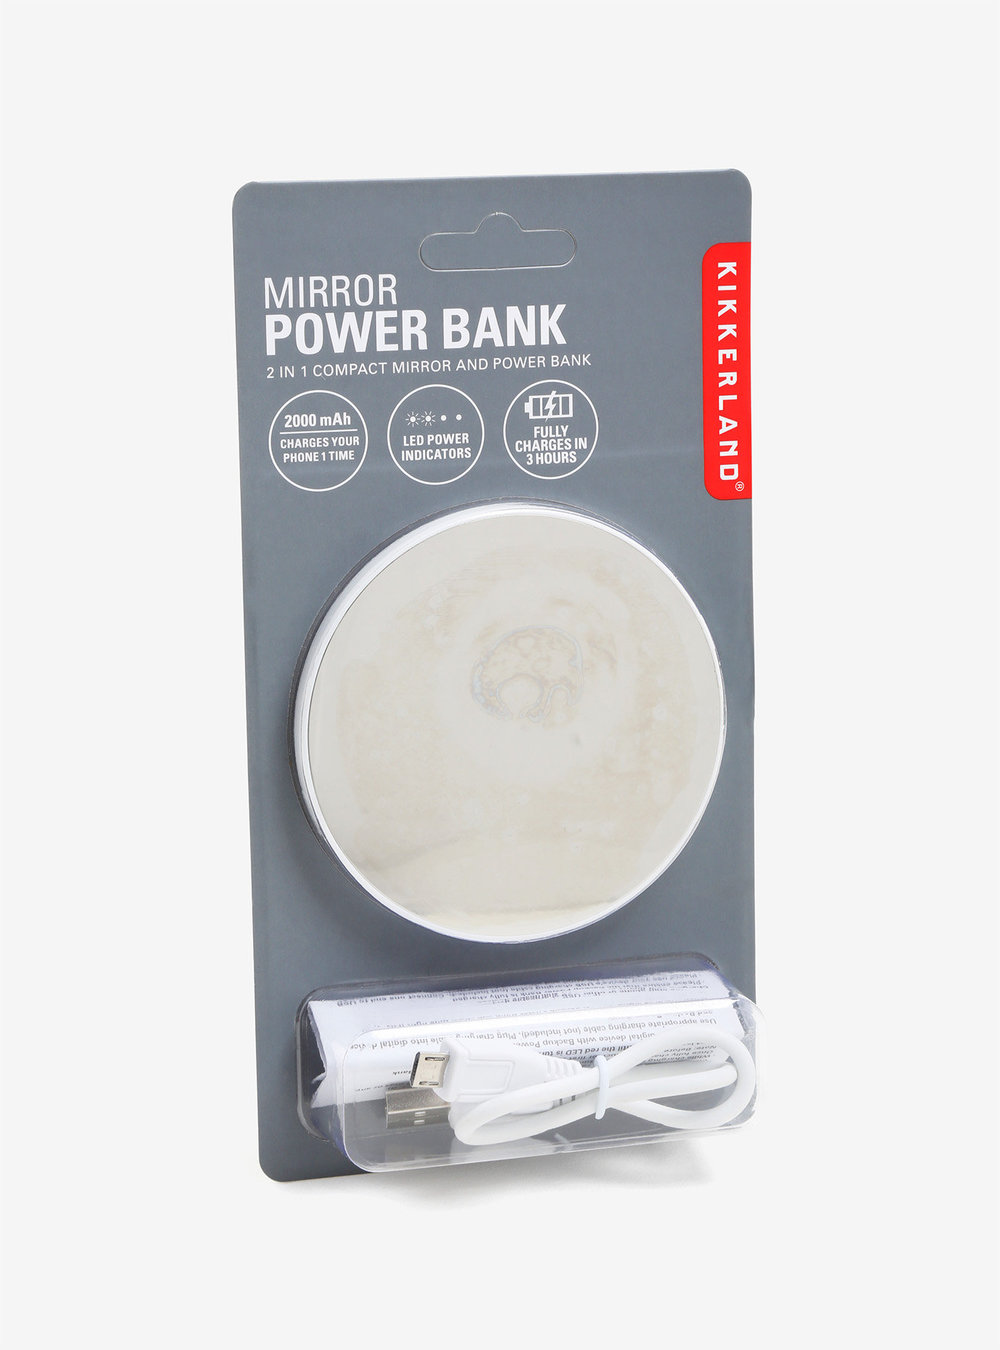 Mirror power bank.jpg